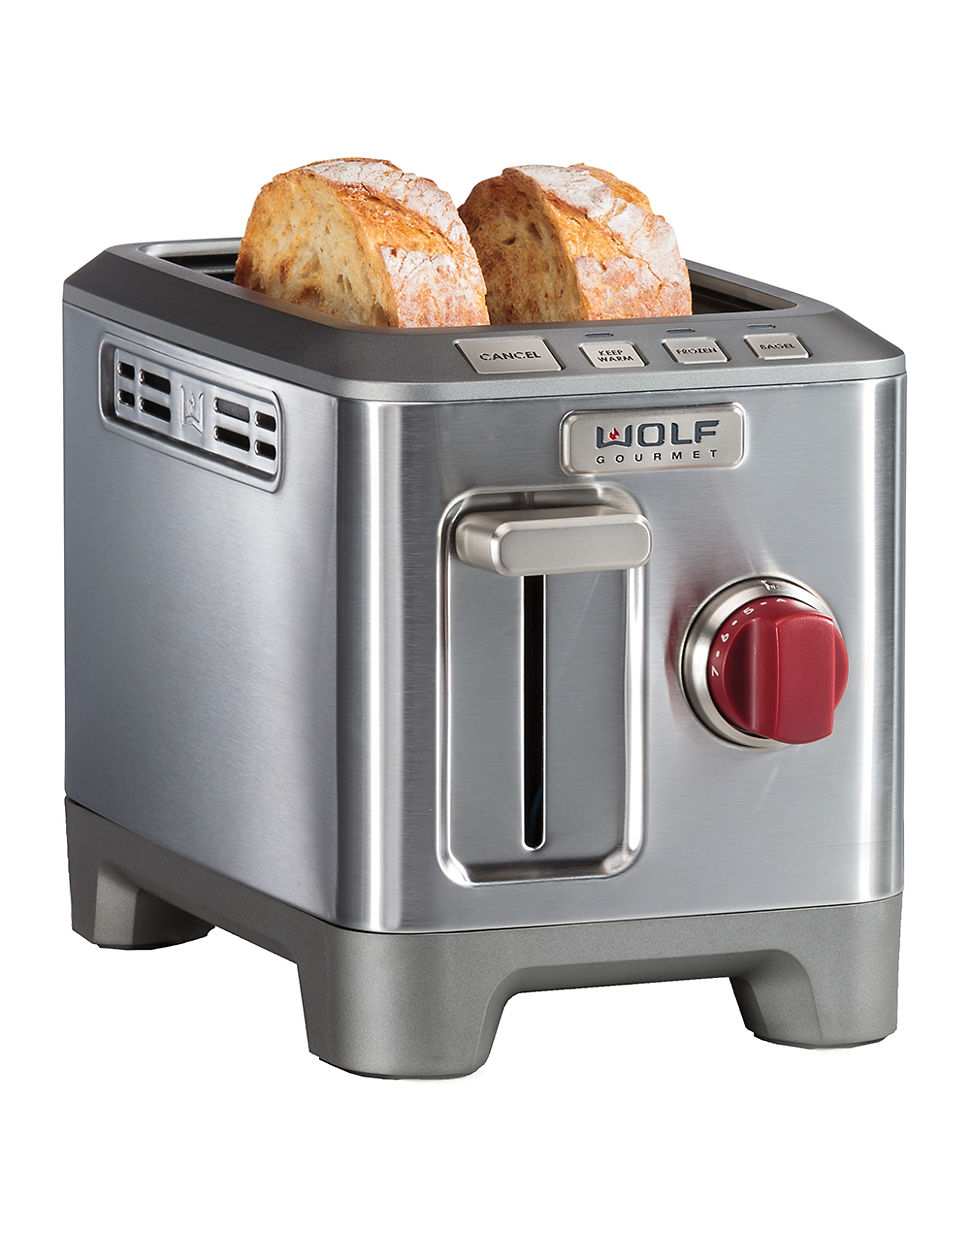 toaster beloved of sunroom oven mesmerize repair reviews engrossing compelling beguiling boat thrilling outstanding size full canada calphalon acceptable wonderful awful